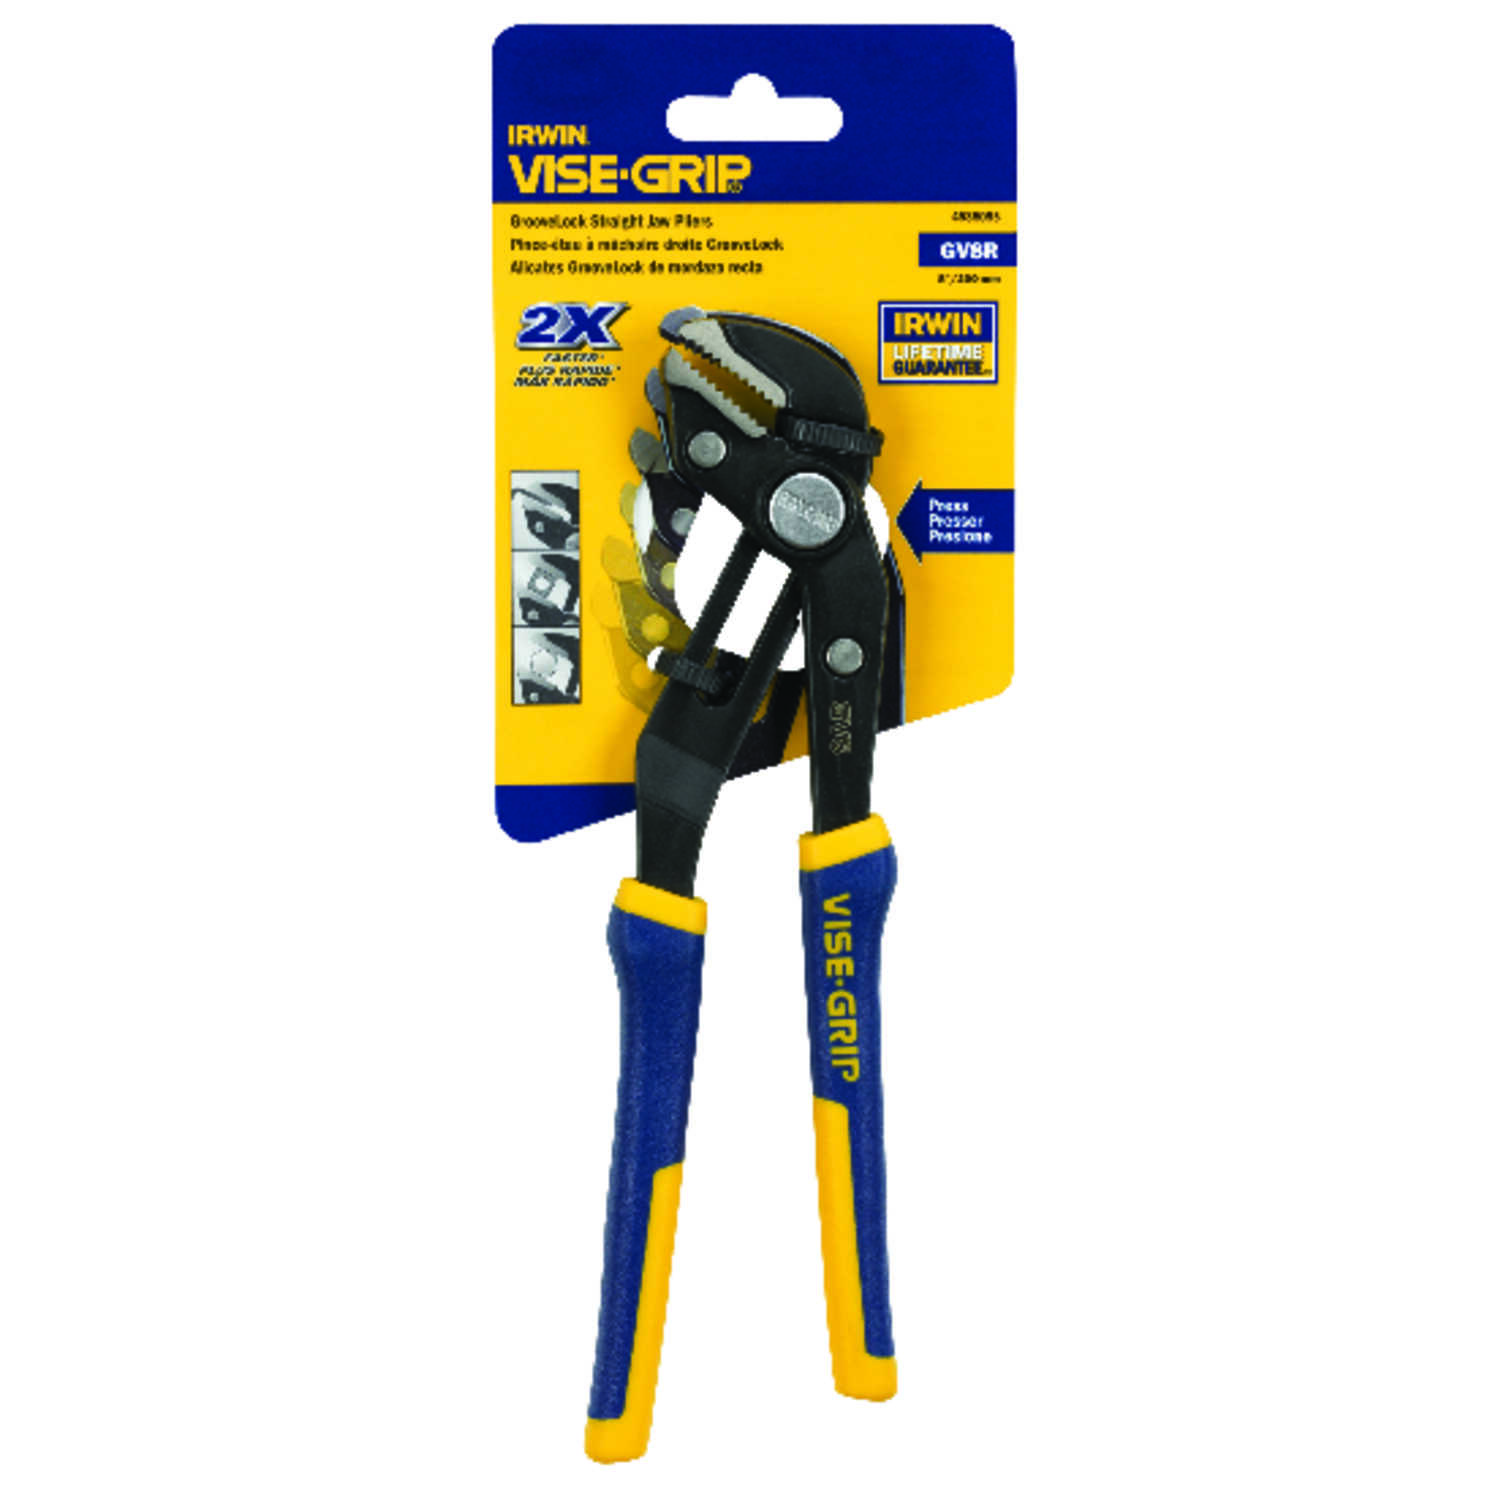 Irwin  Vise-Grip  8 in. Nickel Chrome Steel  Straight Jaw Tongue and Groove Pliers  Blue/Yellow  1 p